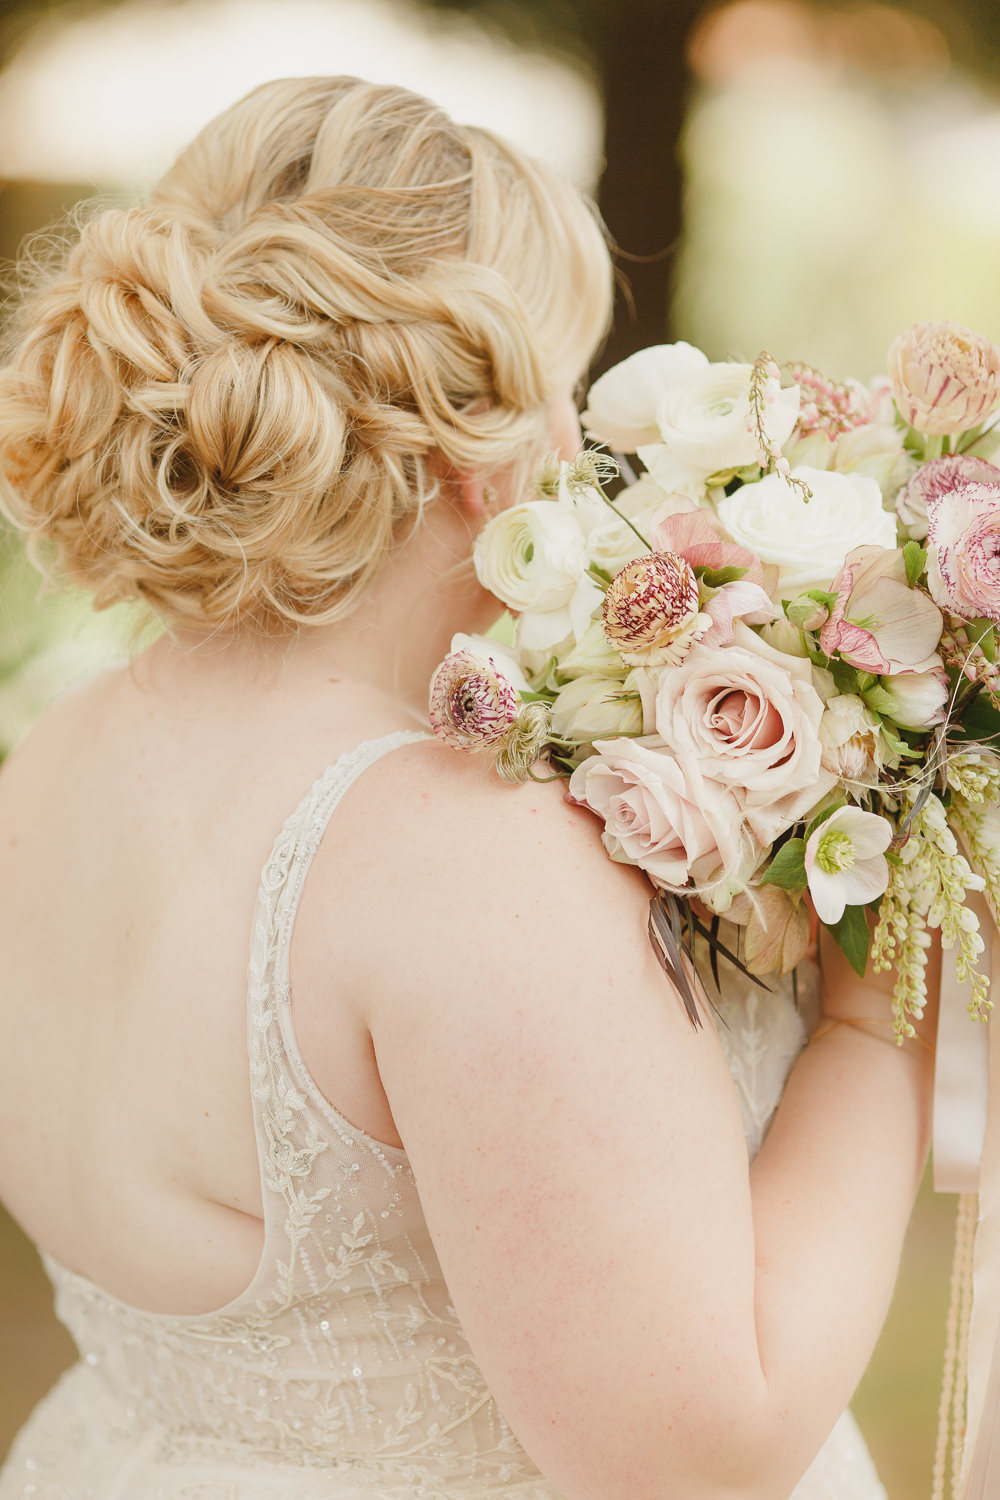 Bride Bridal Hair Style Up D Enchanted Forest Wedding Kristen Booth Photography